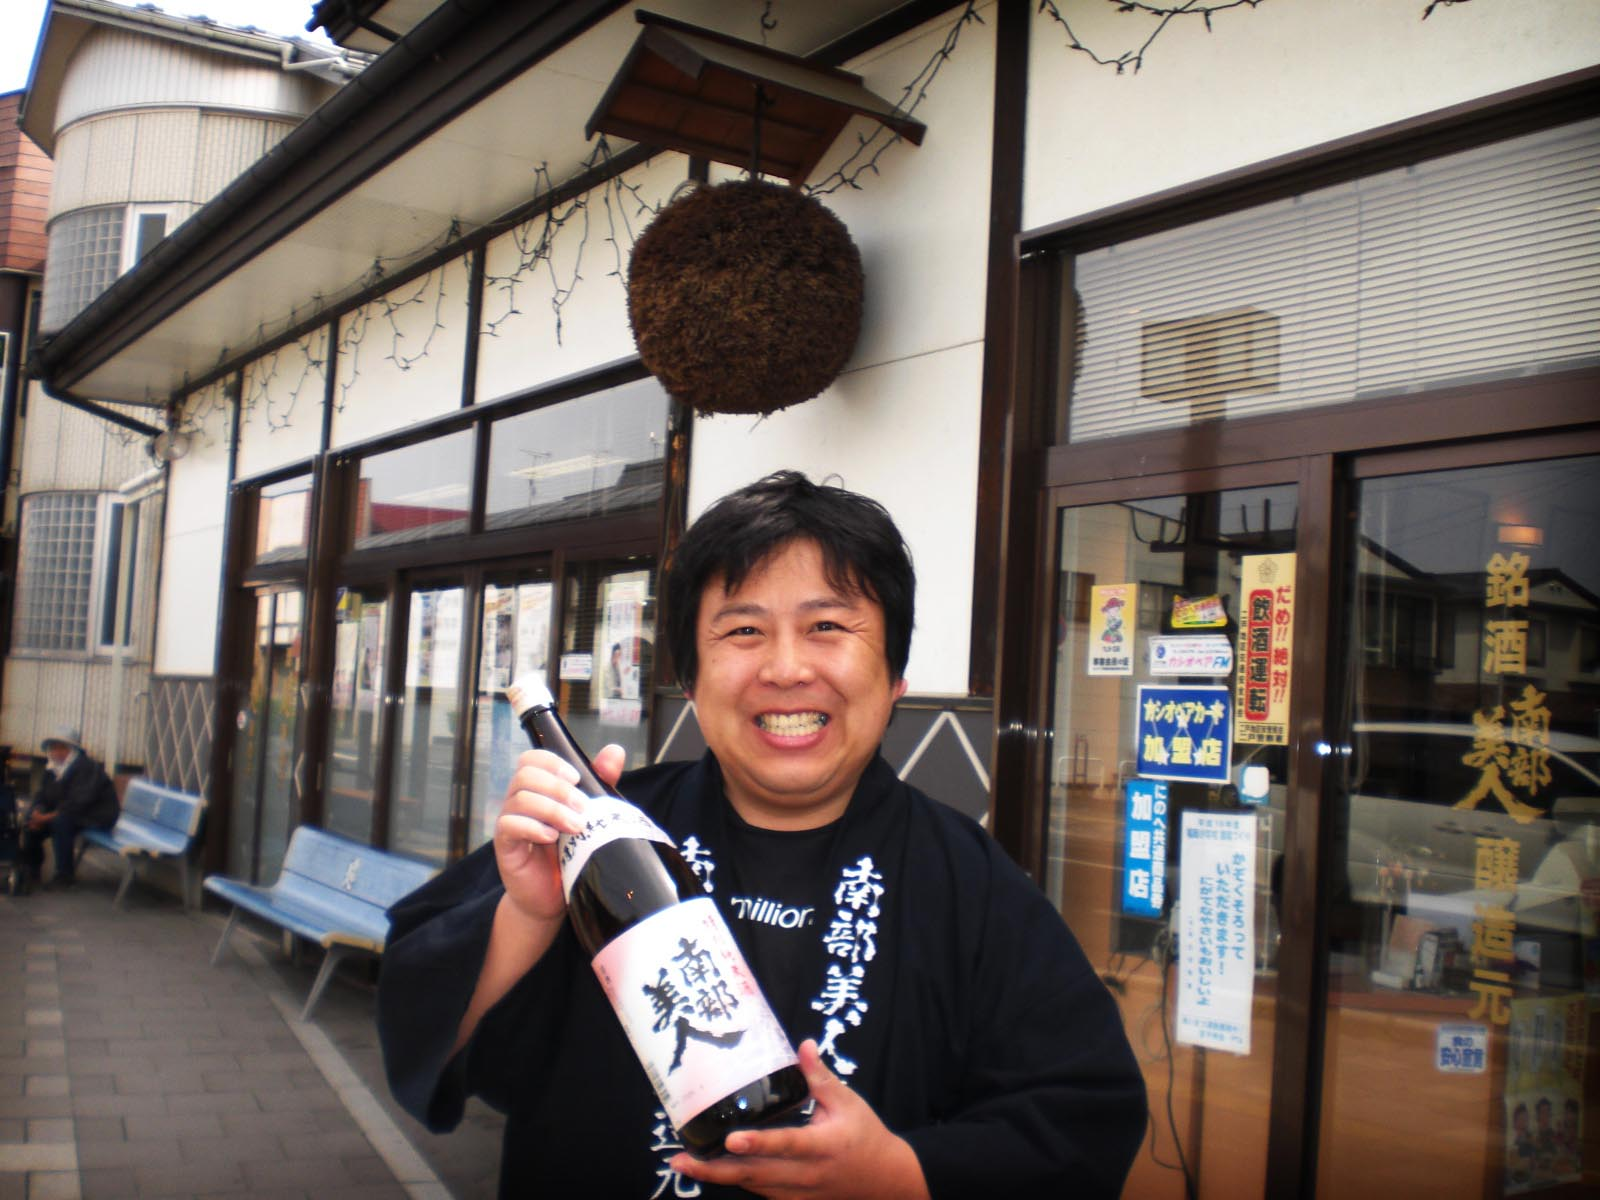 """Kuramoto, 5th Generation Owner of Nanbu Bijin    Kosuke Kuji  was born in 1972, the eldest son of Hiroshi Kuji, the 4th generation owner of Nanbu Bijin Brewery. Kosuke Kuji studied the art of making sake and shochu at the prestigious Tokyo University of Agriculture, learning from professor Takeo Koizumi, who is a well regarded authority on fermented foods. Nanbu Bijin sake has received many awards in national and international sake competitions and also were the first to create a certified Kosher and """"no sugar added"""" plum sake made with only koji rice and locally sourced green plums from Iwate. Kosuke Kuji is well regarded in the sake industry as a strong community supporter of the Tokhoku region of Japan and as an energetic, enthusiastic speaker about all things sake. His enthusiasm and hard work have won over many people to try and then love sake.  飲んだ時に笑顔あふれる太陽のような酒 """"I want to brew sake that makes people smile like the sun shines."""" - Kosuke Kuji"""